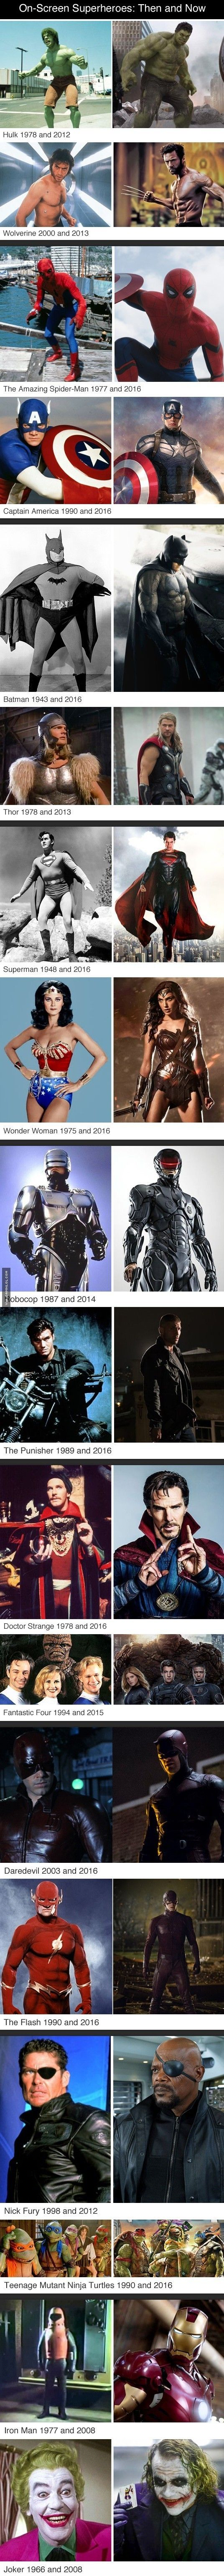 Best All Marvel Superheroes Ideas On Pinterest All Marvel - 18 then and now photos of your favourite on screen superheroes